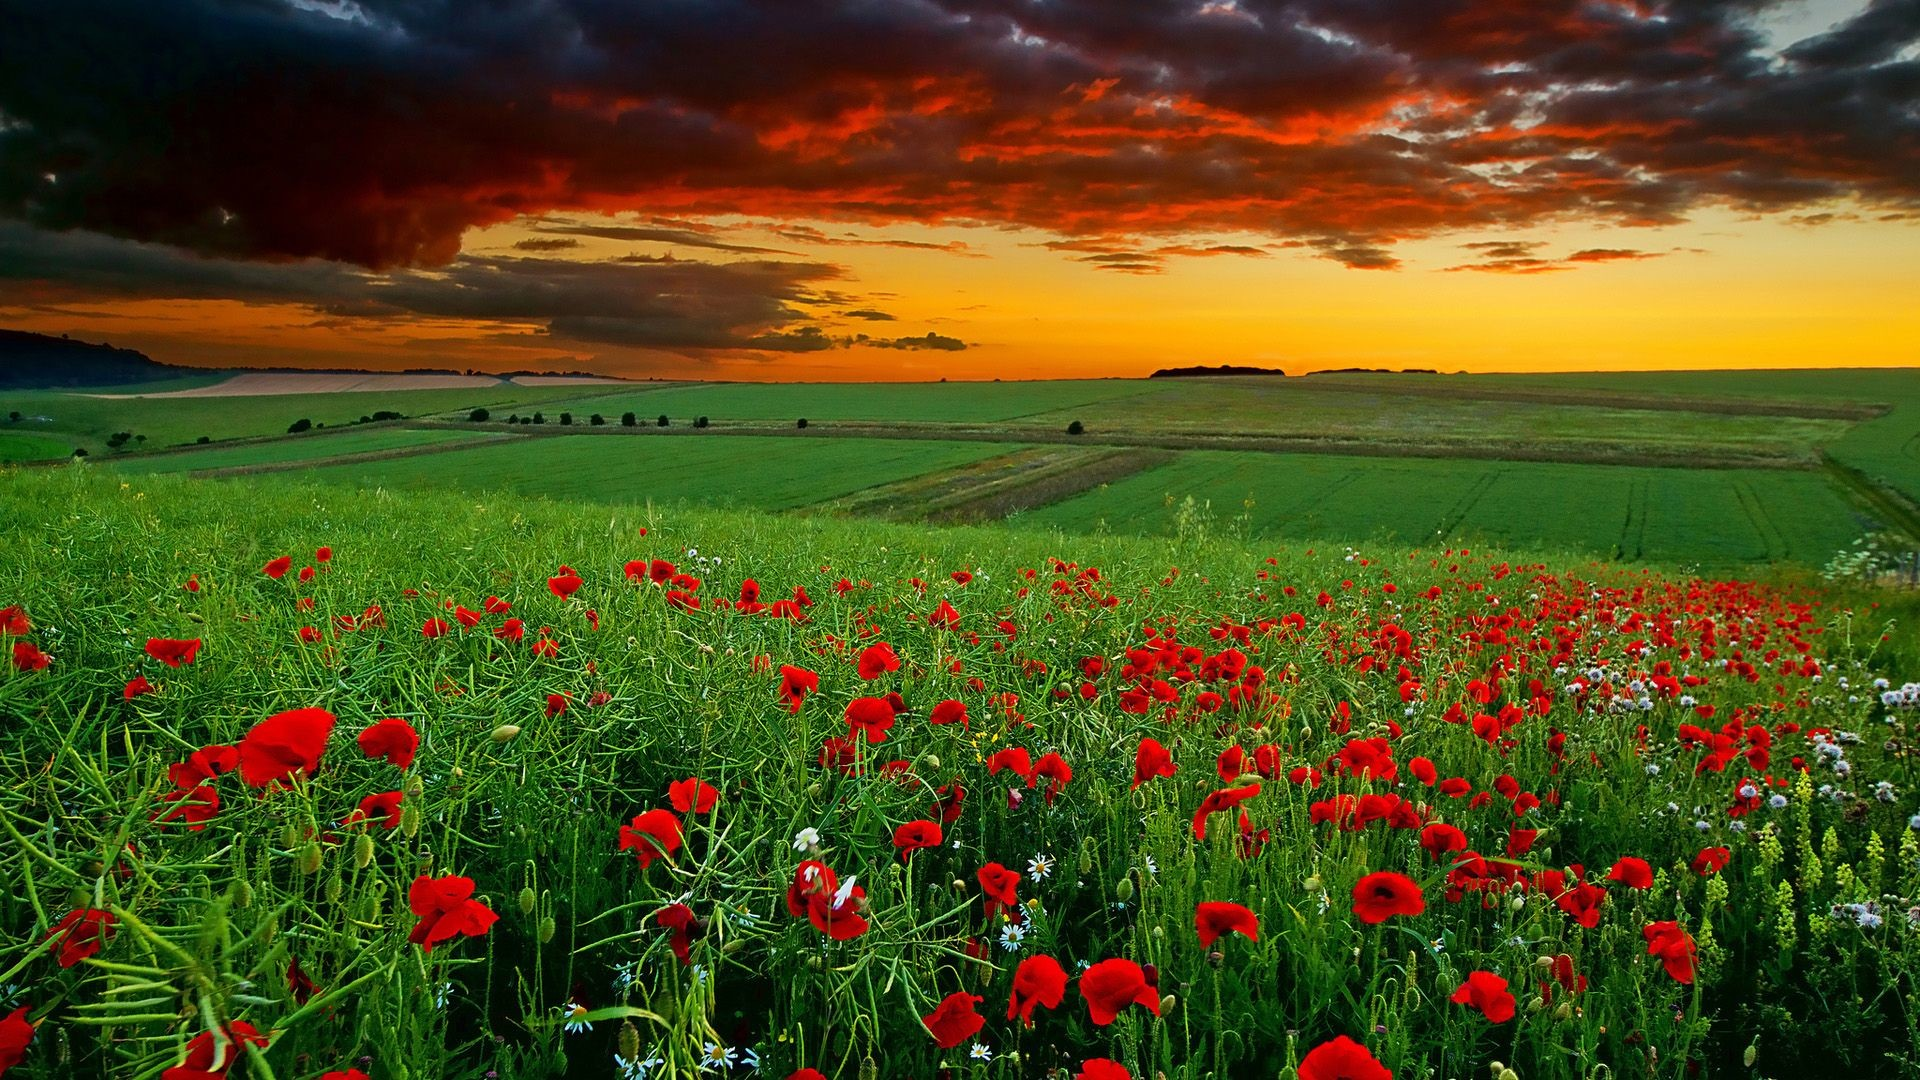 hd wallpapers 1080p widescreen nature free download-4 – HD .